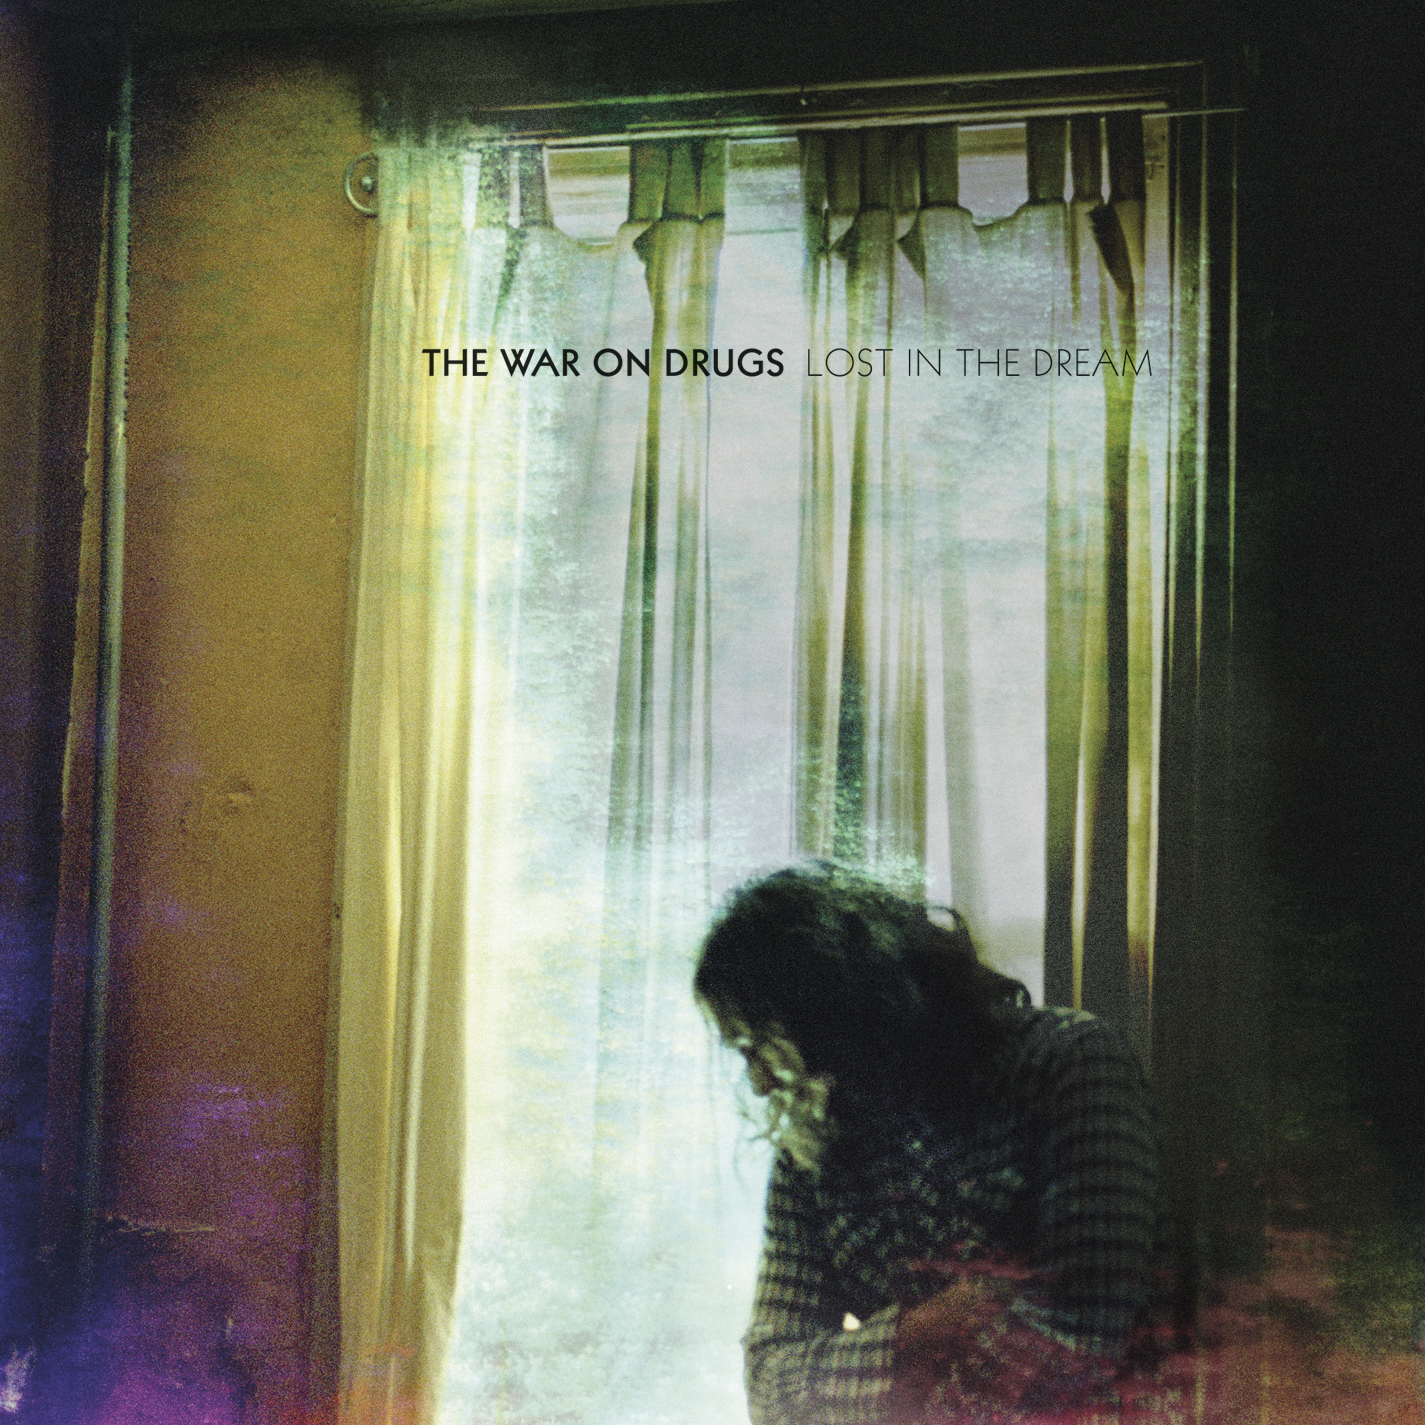 https://i1.wp.com/cdn2.thelineofbestfit.com/media/2014/war_on_drugs_album_cover.jpg